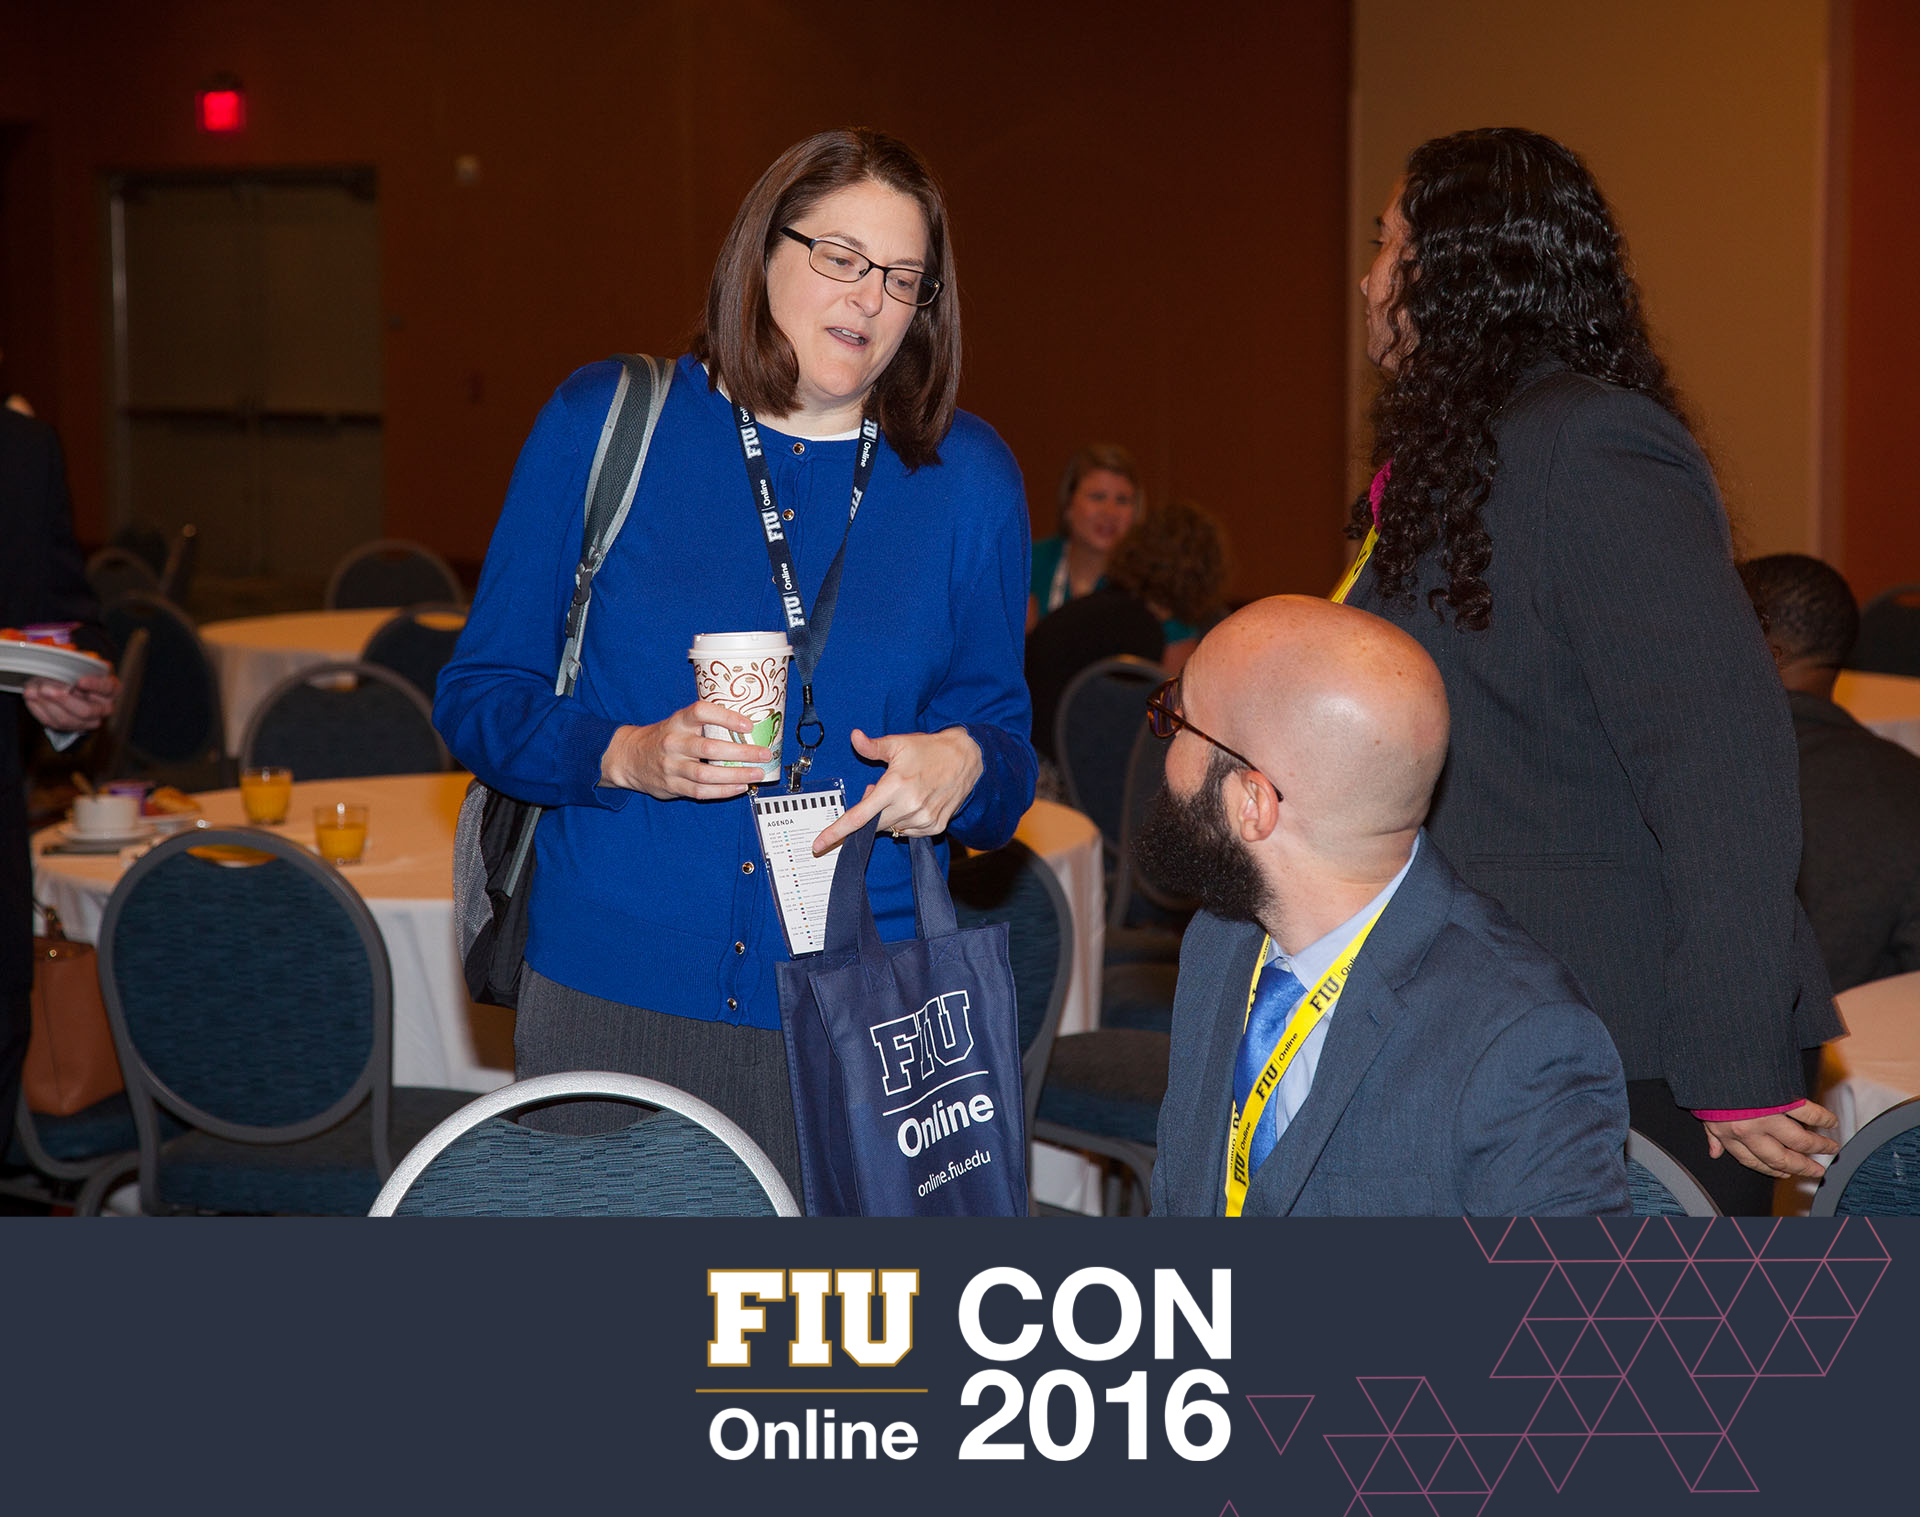 142.jpg FIU Online conference photos